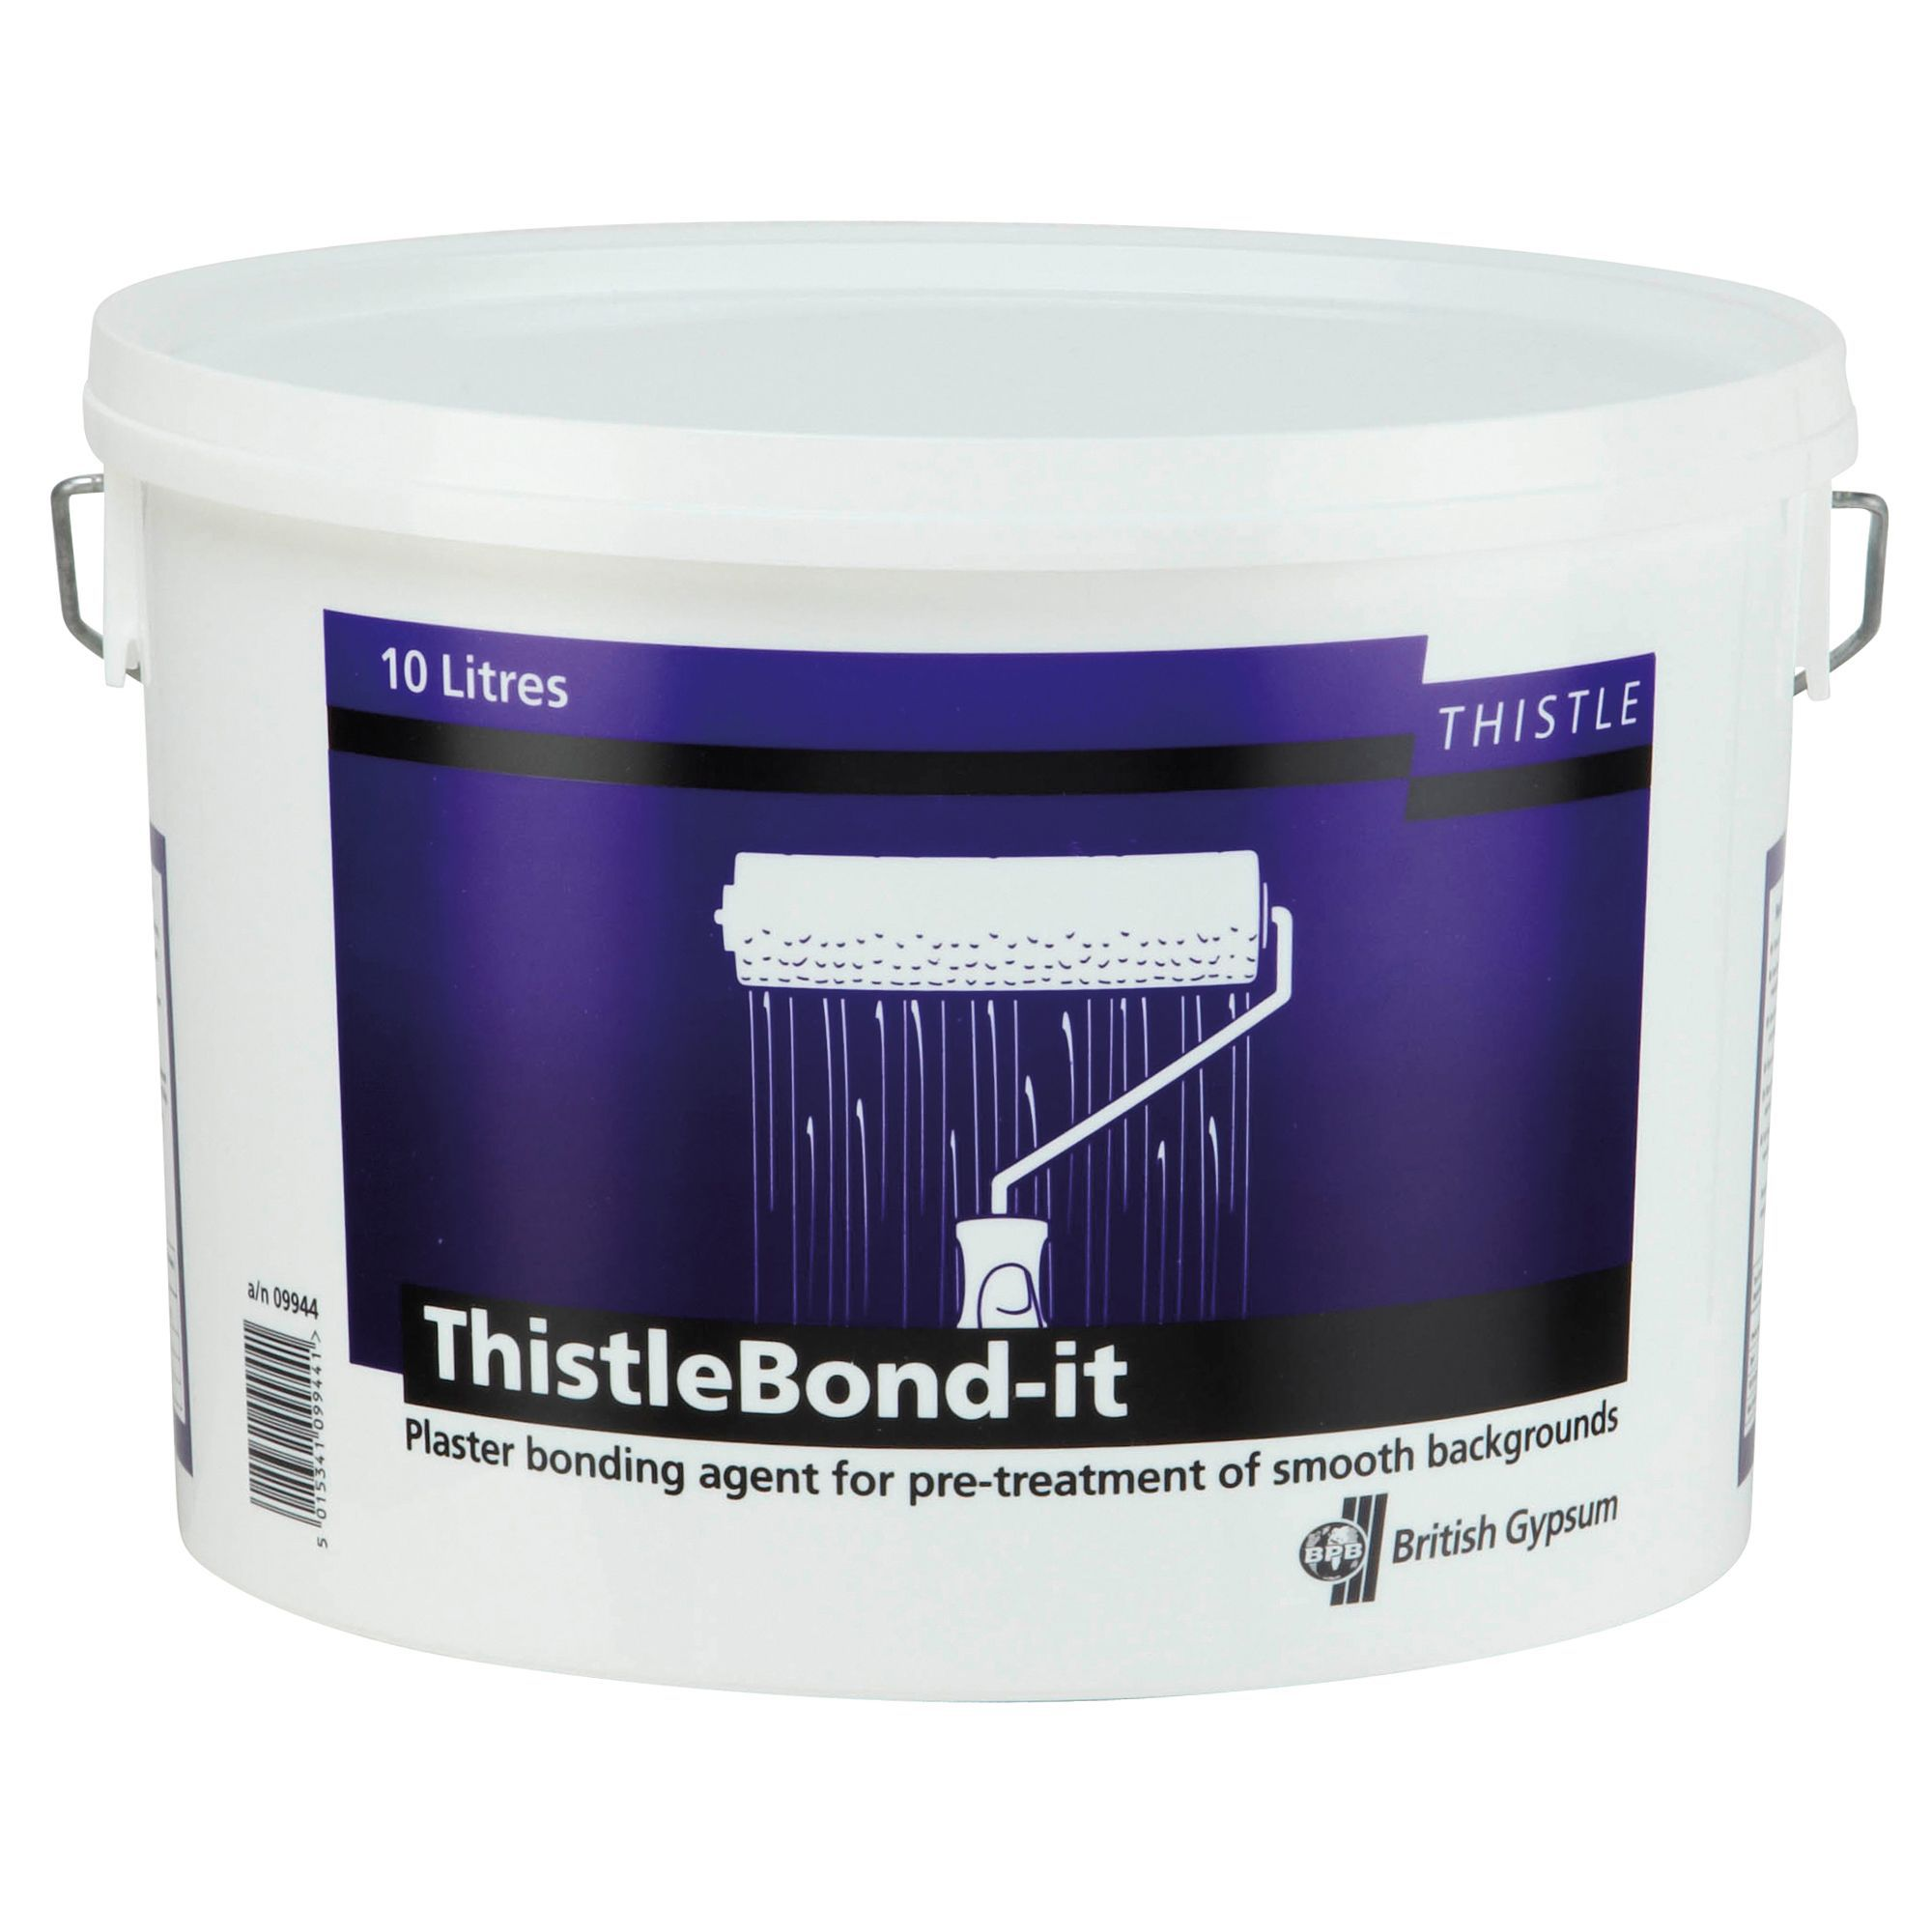 Thistle Bond-it 10 Litre Tub